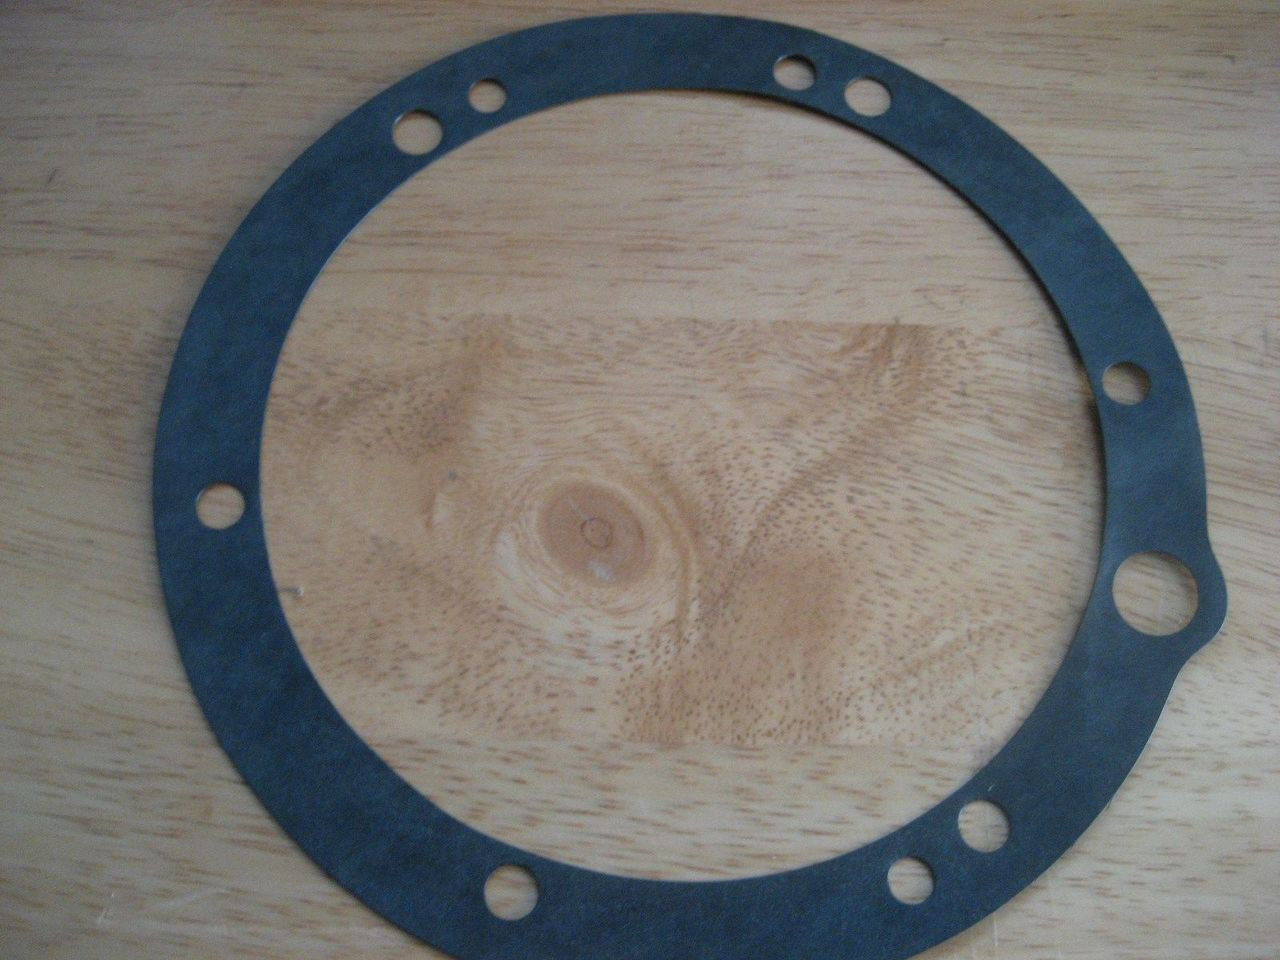 NEW VINTAGE BMW REAR DRIVE COVER GASKET R50 R60 R69S NEW - 33 11 3 044 320